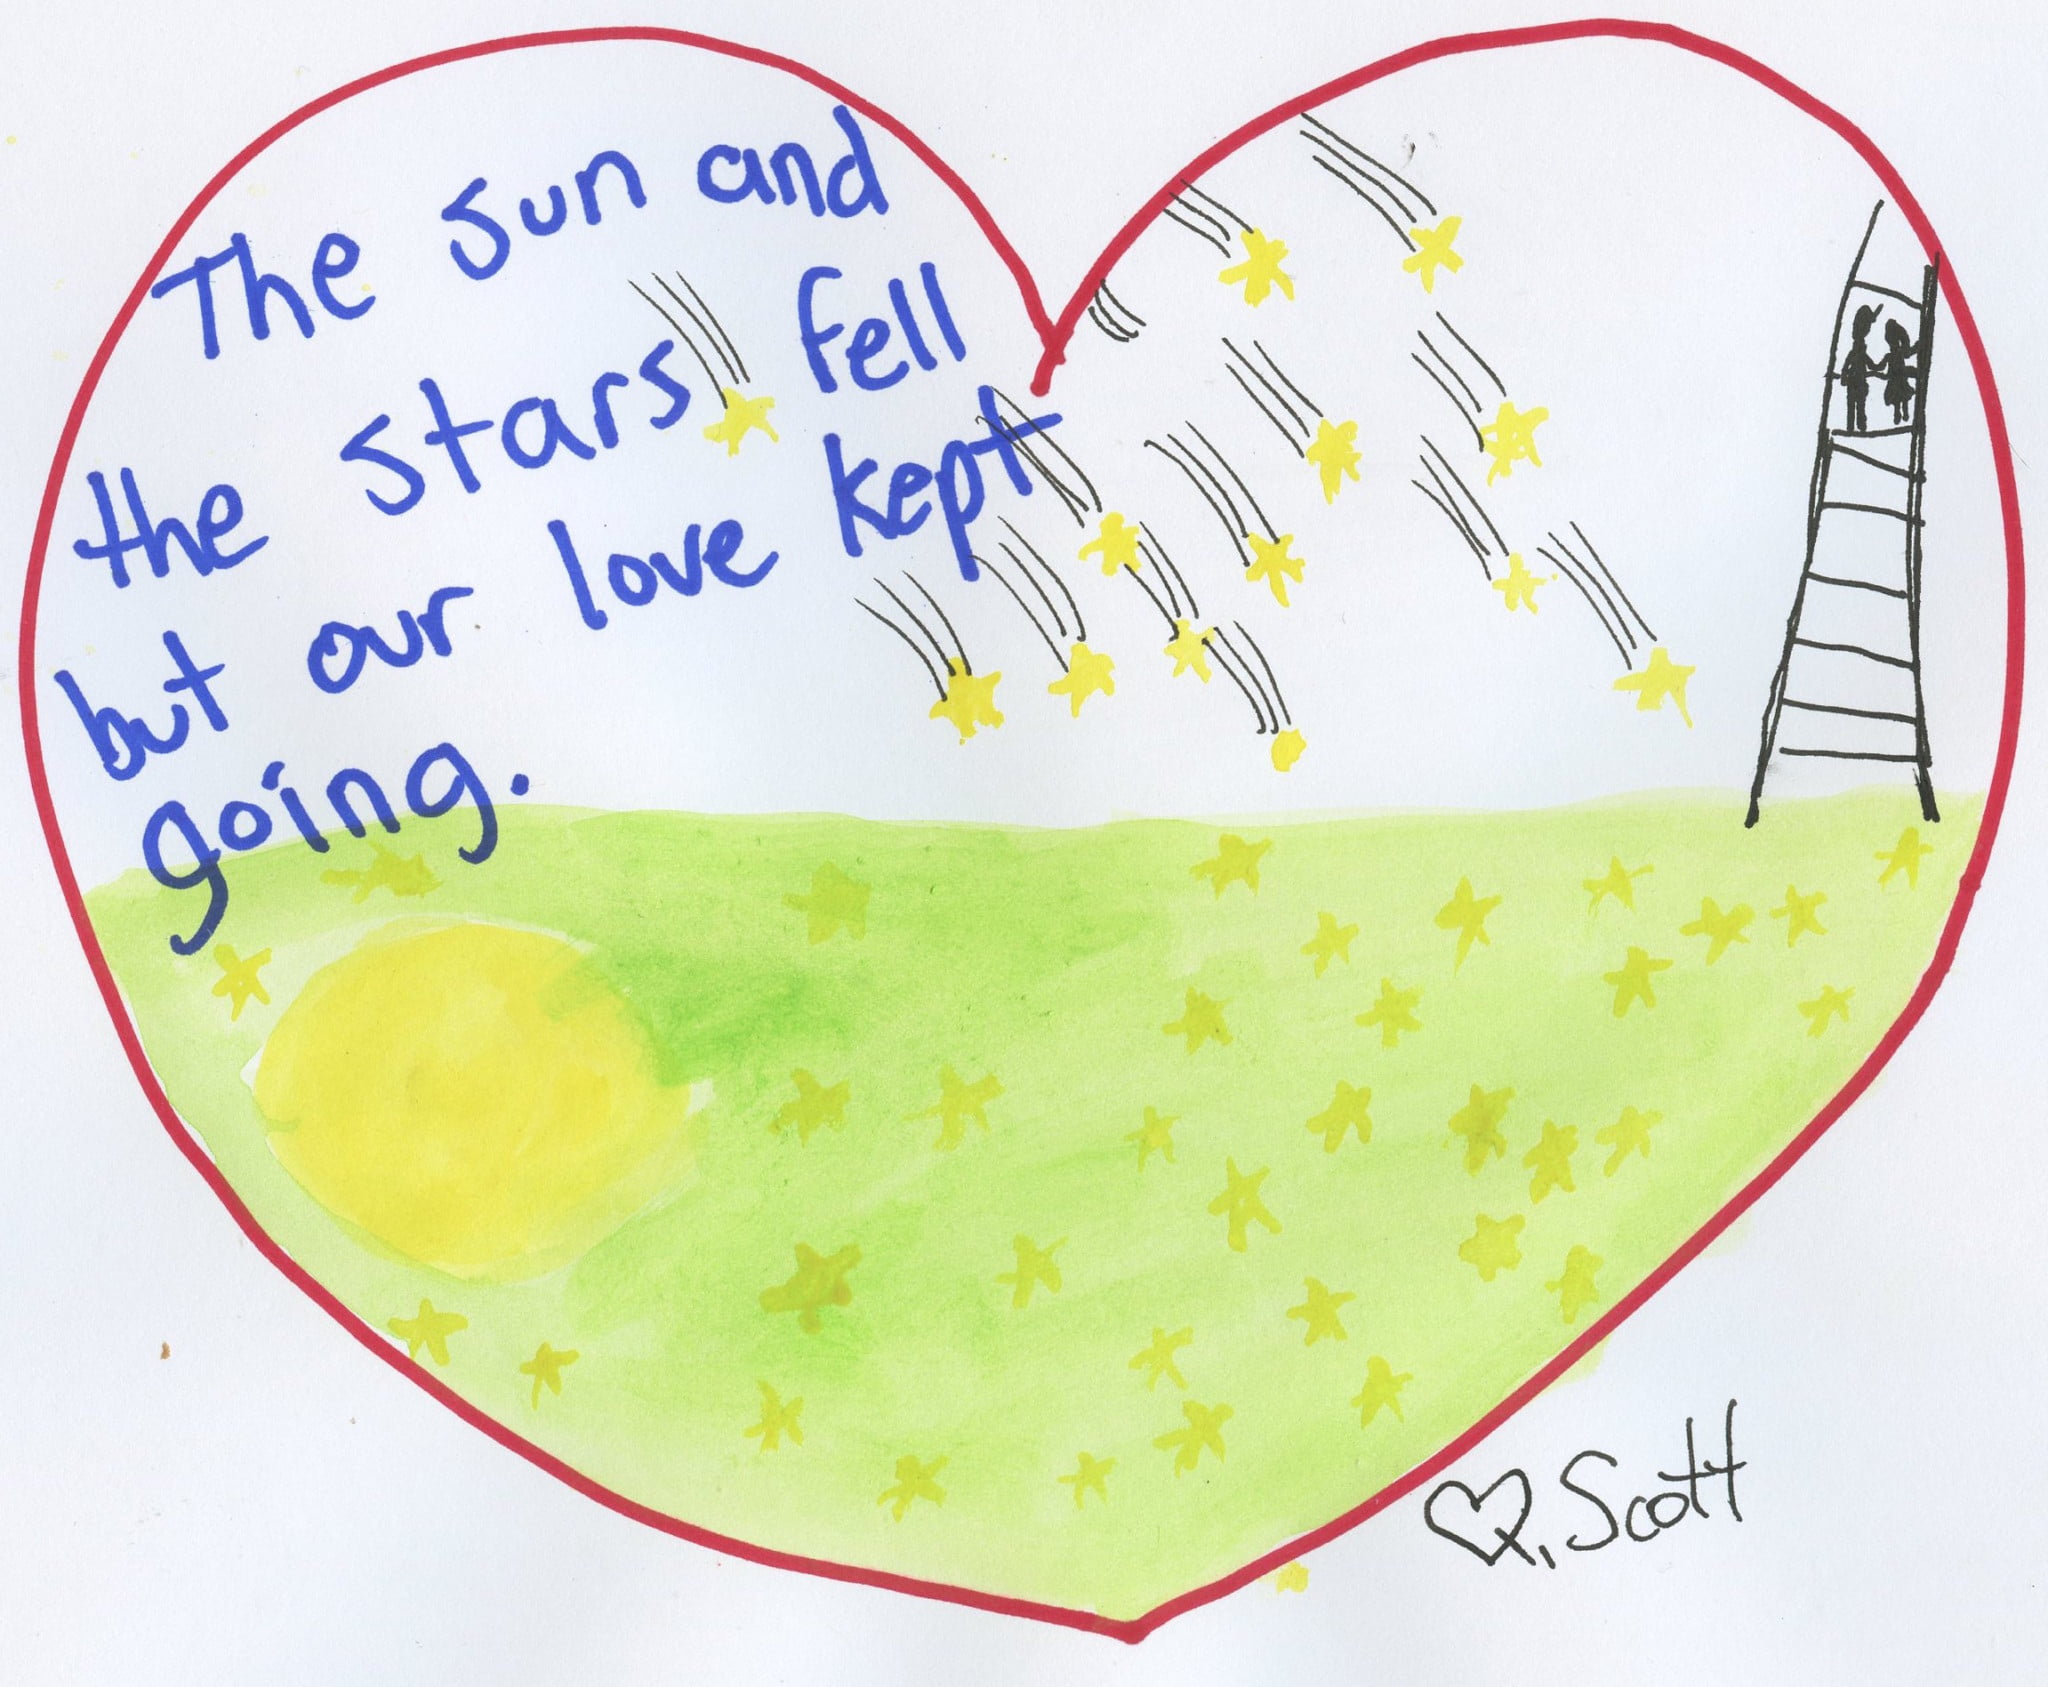 The sun and stars fell but our love kept going